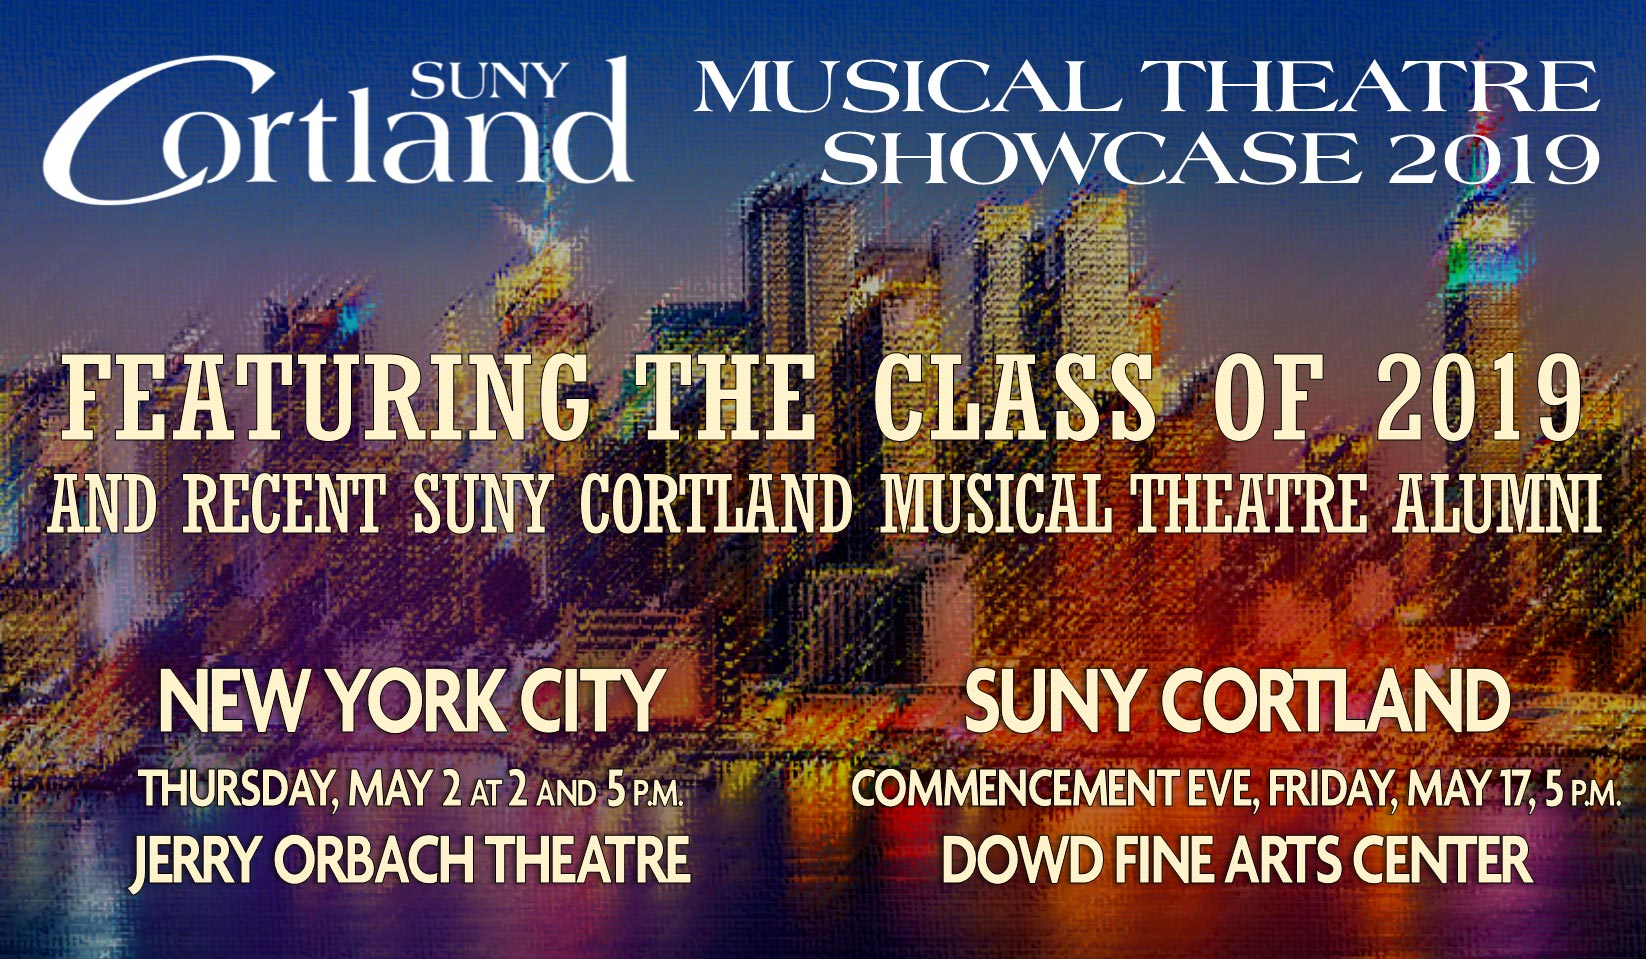 NYC Skyline with text: SUNY Cortland musical theatre showcase 2019 featuring the cast of 2019 New York City, Thursday May 2 at 2 and 5 p.m. Jerry Orbach Theatre. SUNY Cortland Commencement Eve Friday May 17 at 5 p.m.